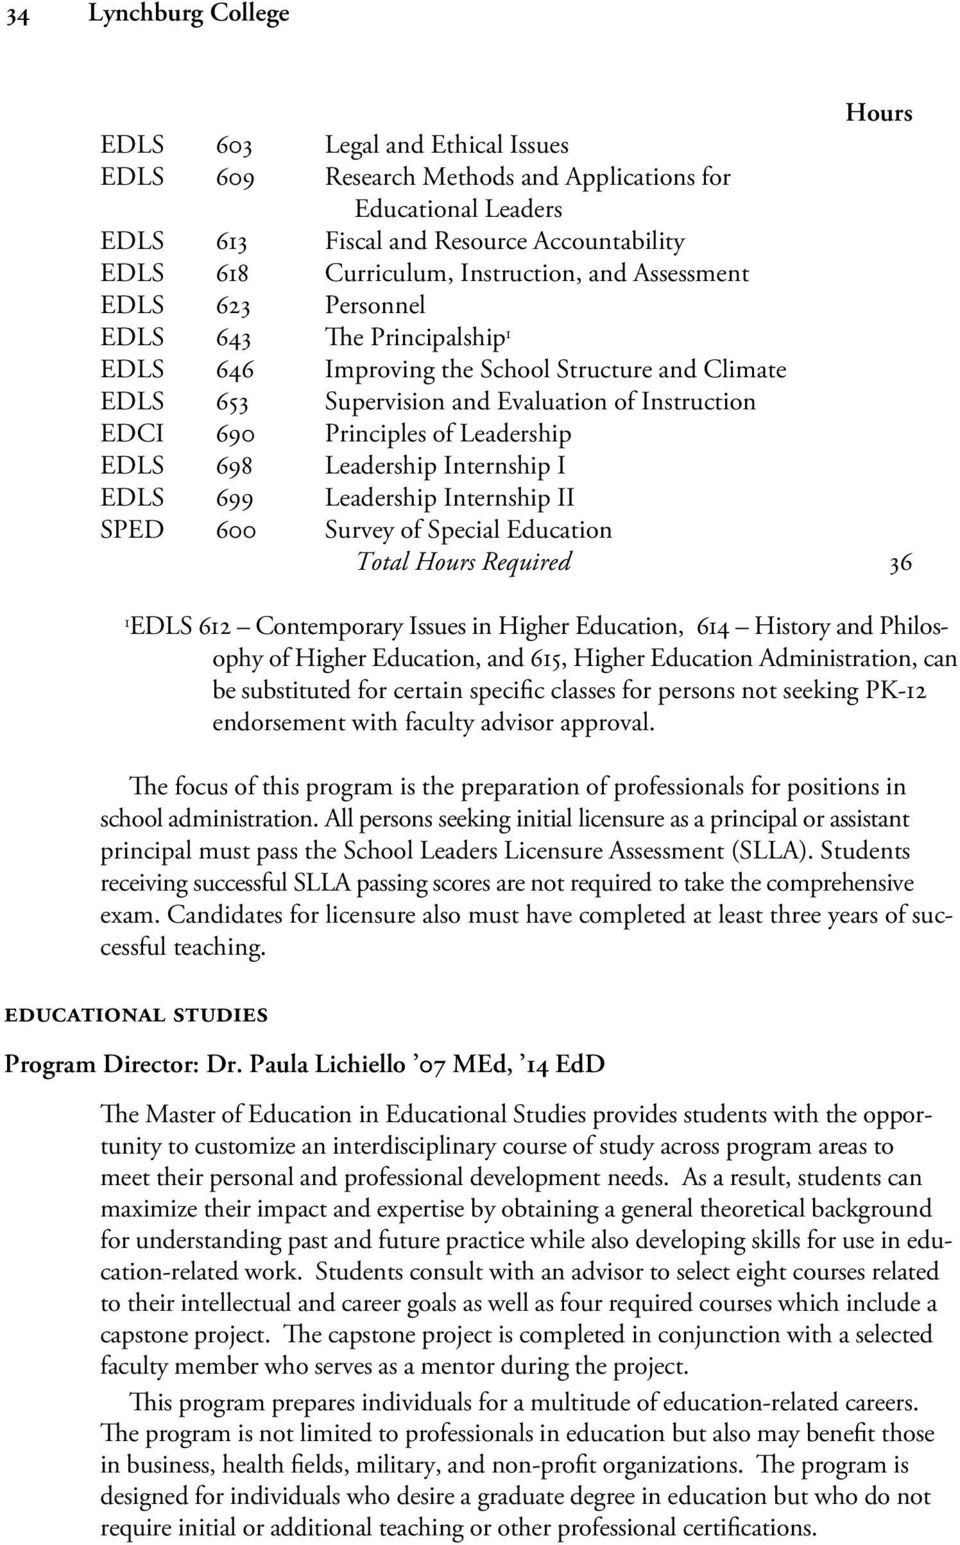 of Leadership EDLS 698 Leadership Internship I EDLS 699 Leadership Internship II SPED 600 Survey of Special Education Total Hours Required 36 1 EDLS 612 Contemporary Issues in Higher Education, 614